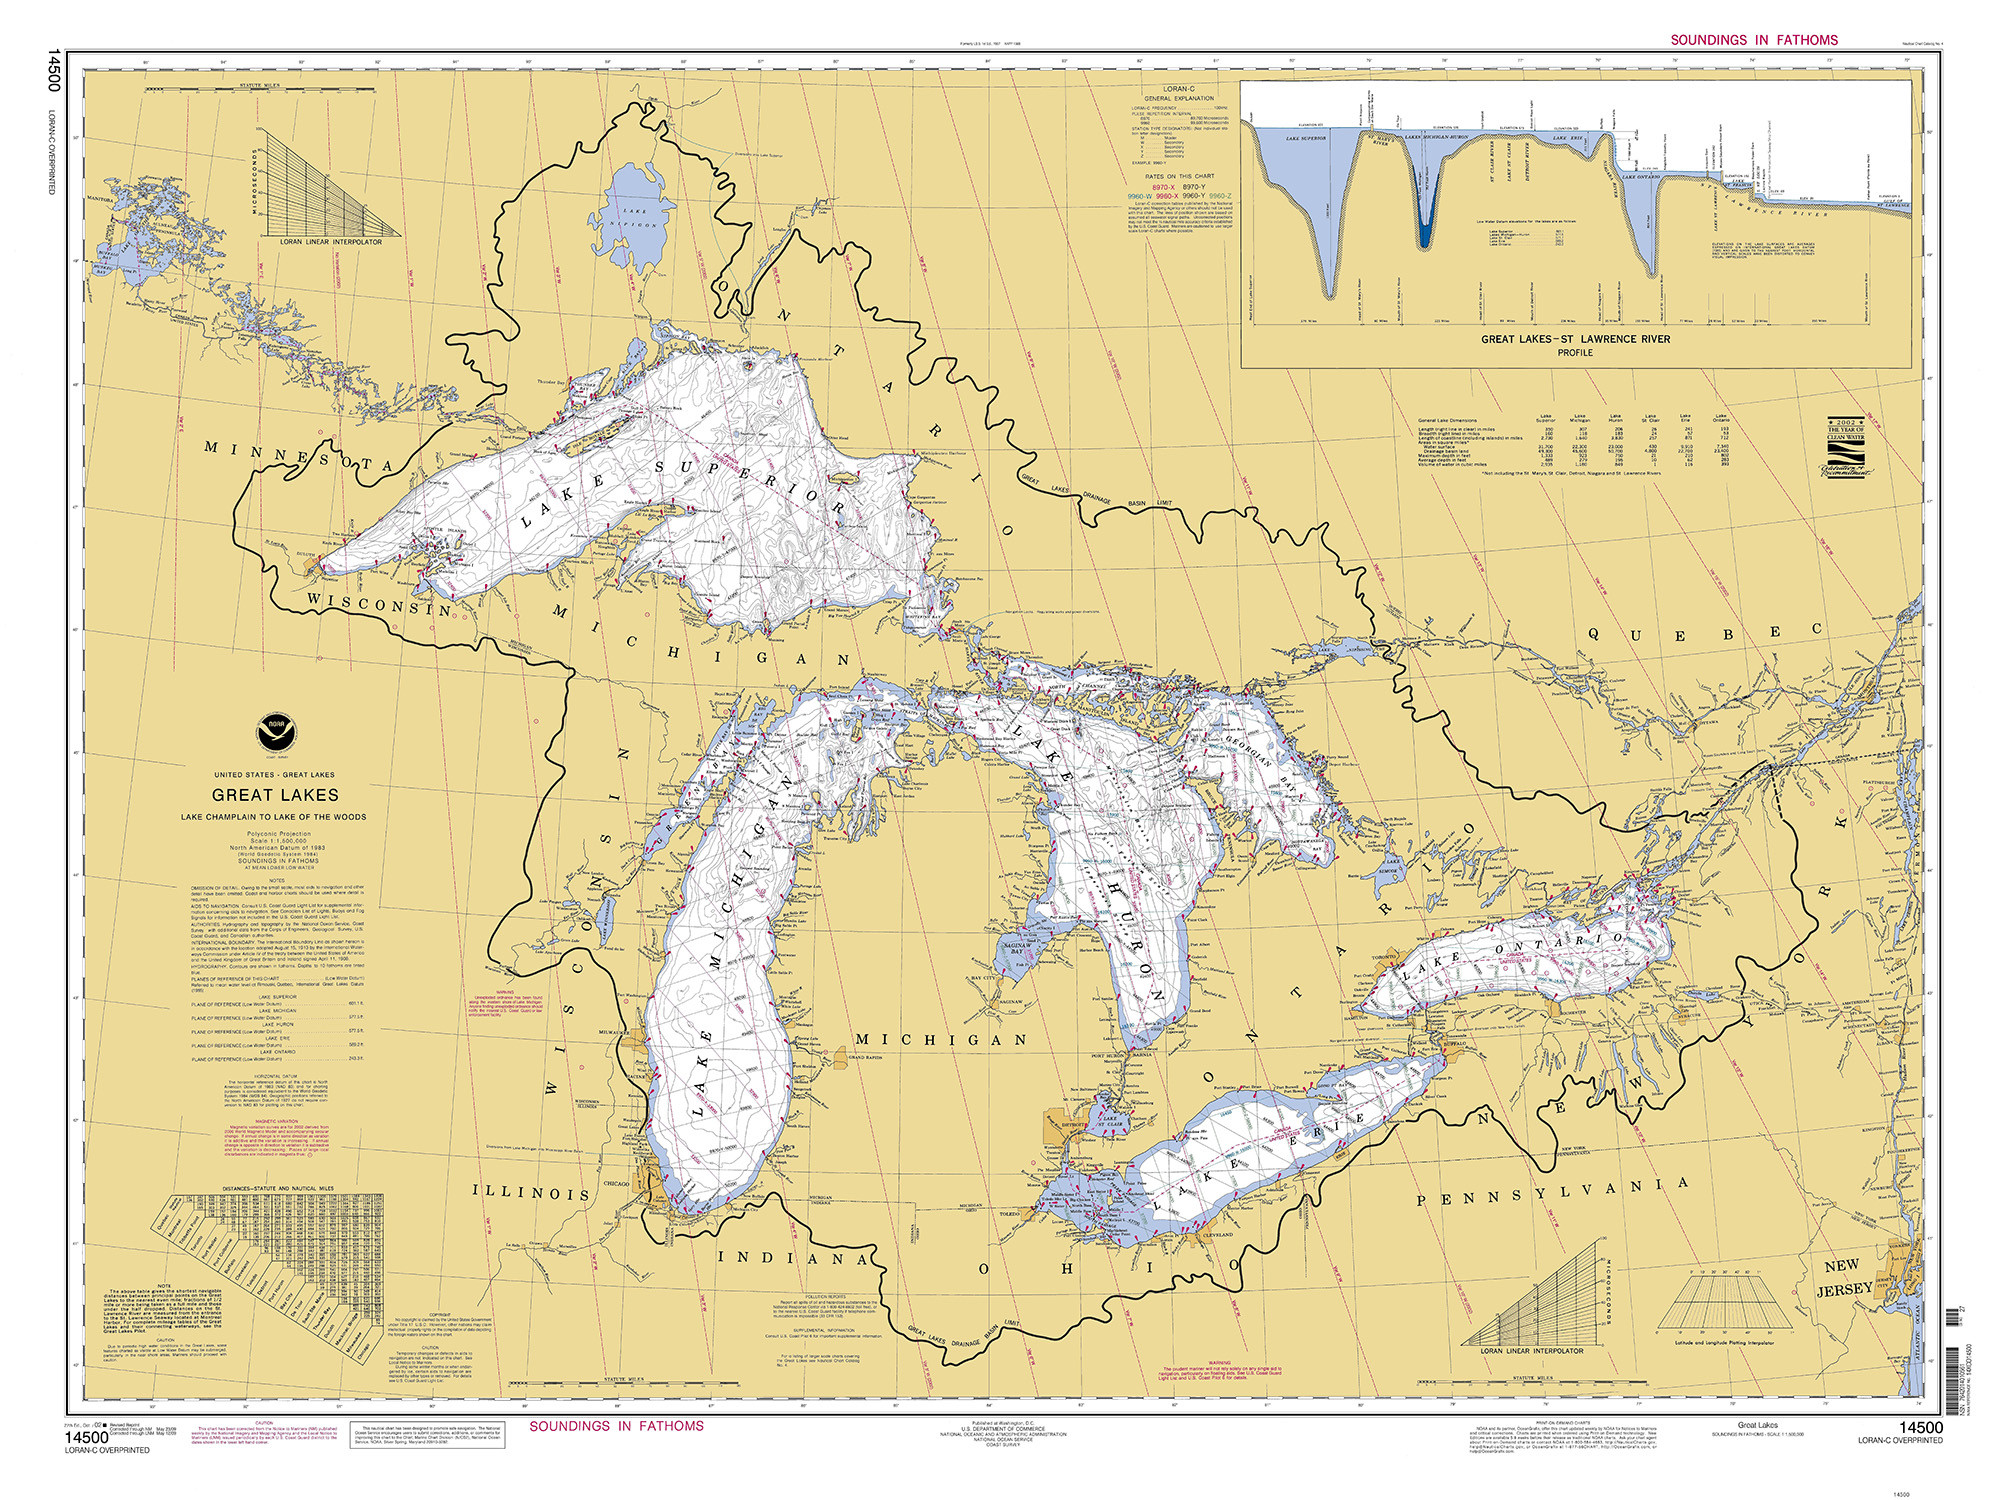 Historical Nautical Chart - 14500-05-2009 Great Lakes on rocky mountains united states map, west central united states map, great lakes map with states, great lakes states outline map, atlantic ocean united states map, colorado river united states map, big united states map, gulf coast united states map, gulf of mexico united states map, toronto united states map, the northeast united states map, rio grande united states map, gulf of alaska united states map, great lakes florida, lake tahoe united states map, great lakes google maps, appalachian mountains united states map, major rivers united states map, lake michigan united states map, lake erie united states map,